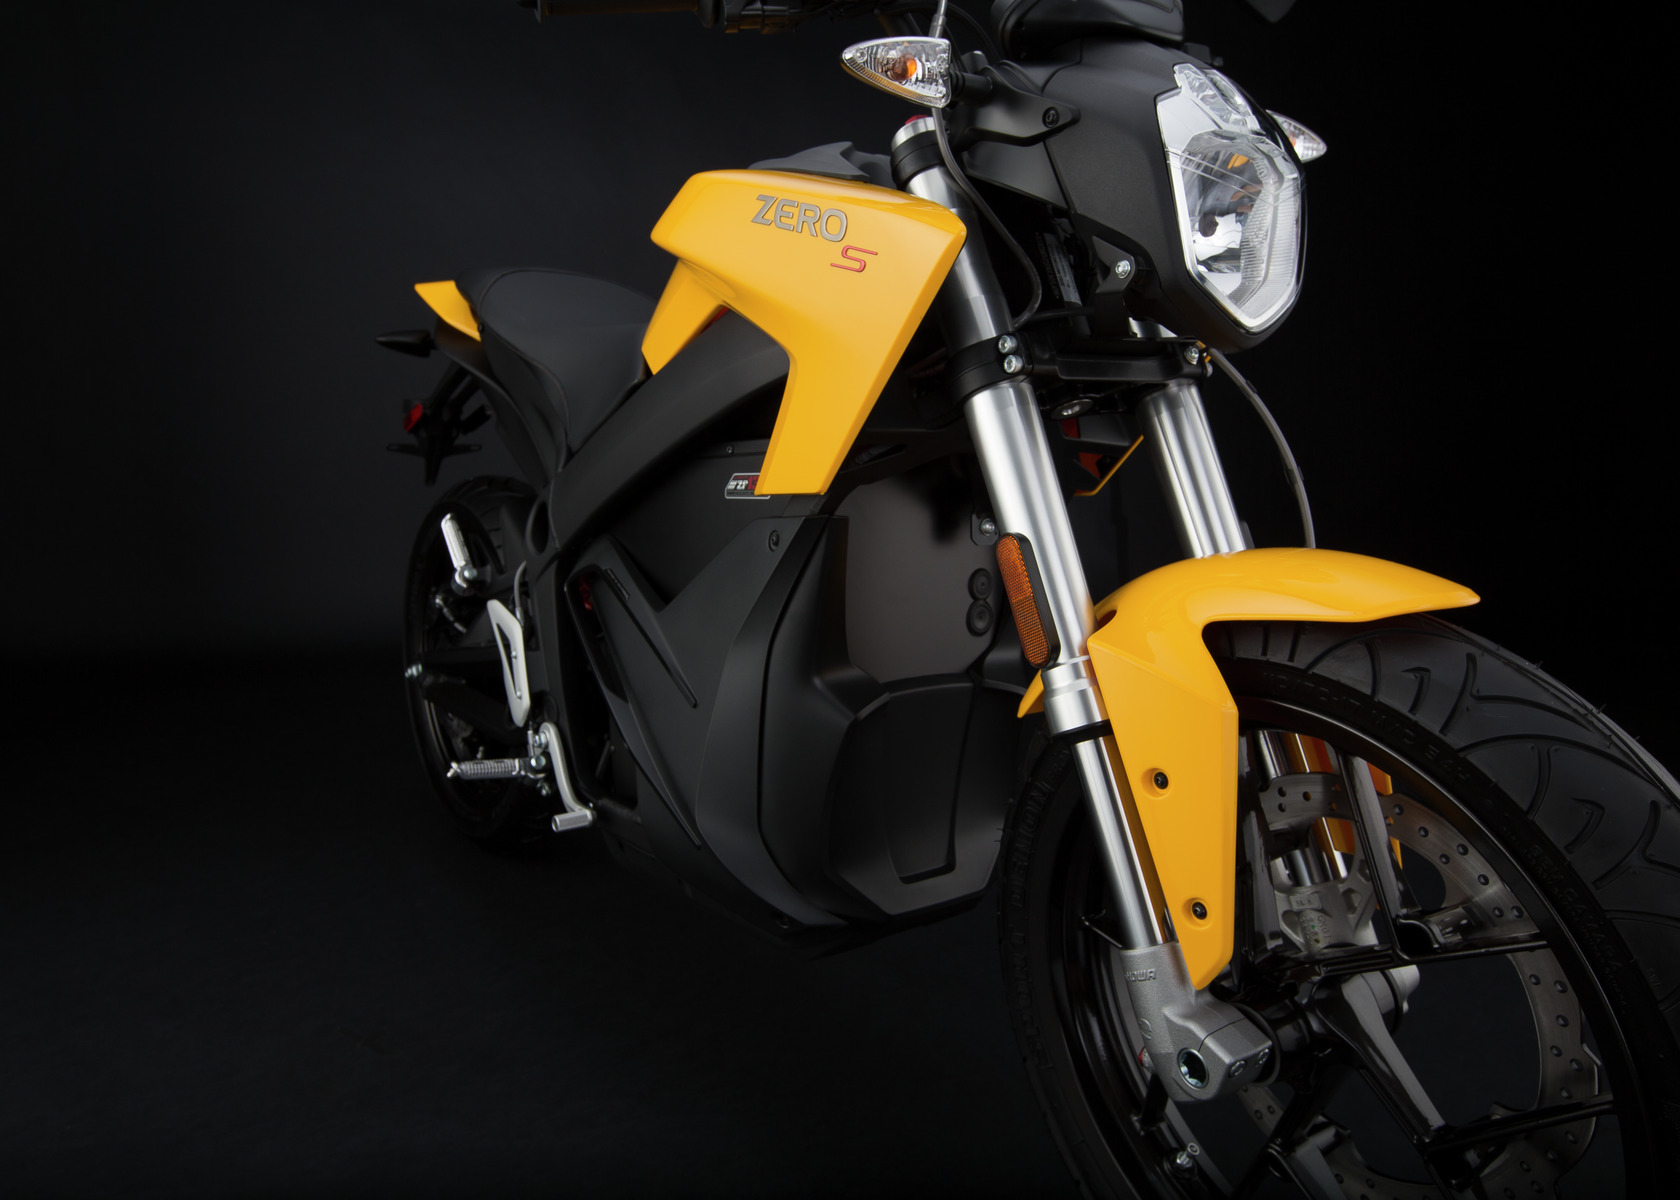 2016 Zero S Electric Motorcycle: Front Fork